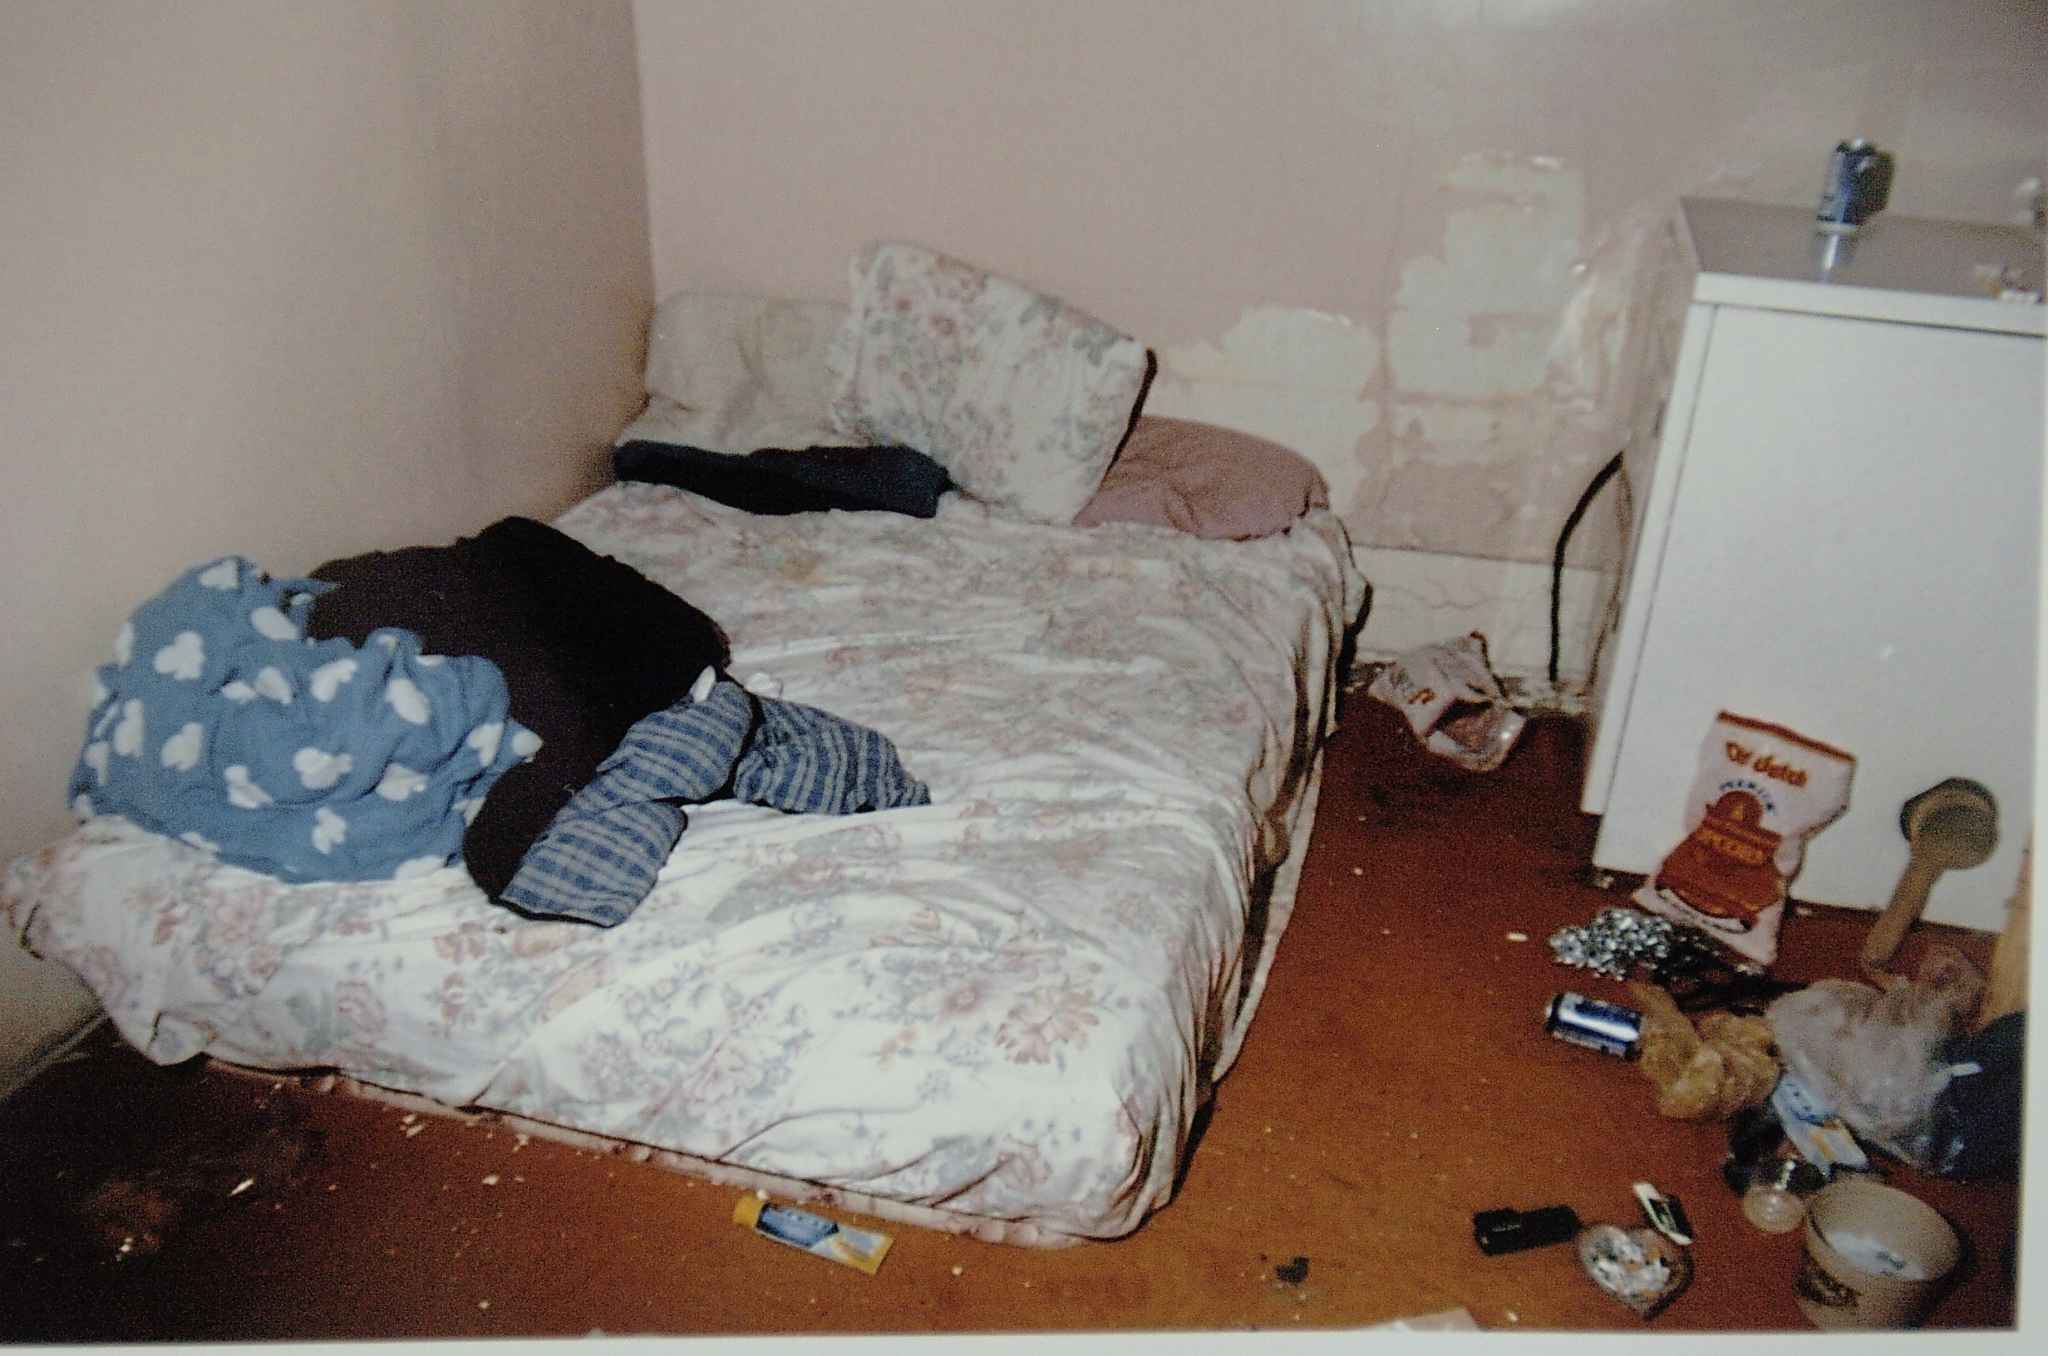 Bedding inside a house that Peter Whitmore used near Kipling, Sask., is seen in a photo used as evidence in court. (Don Healy / Leader-Post)